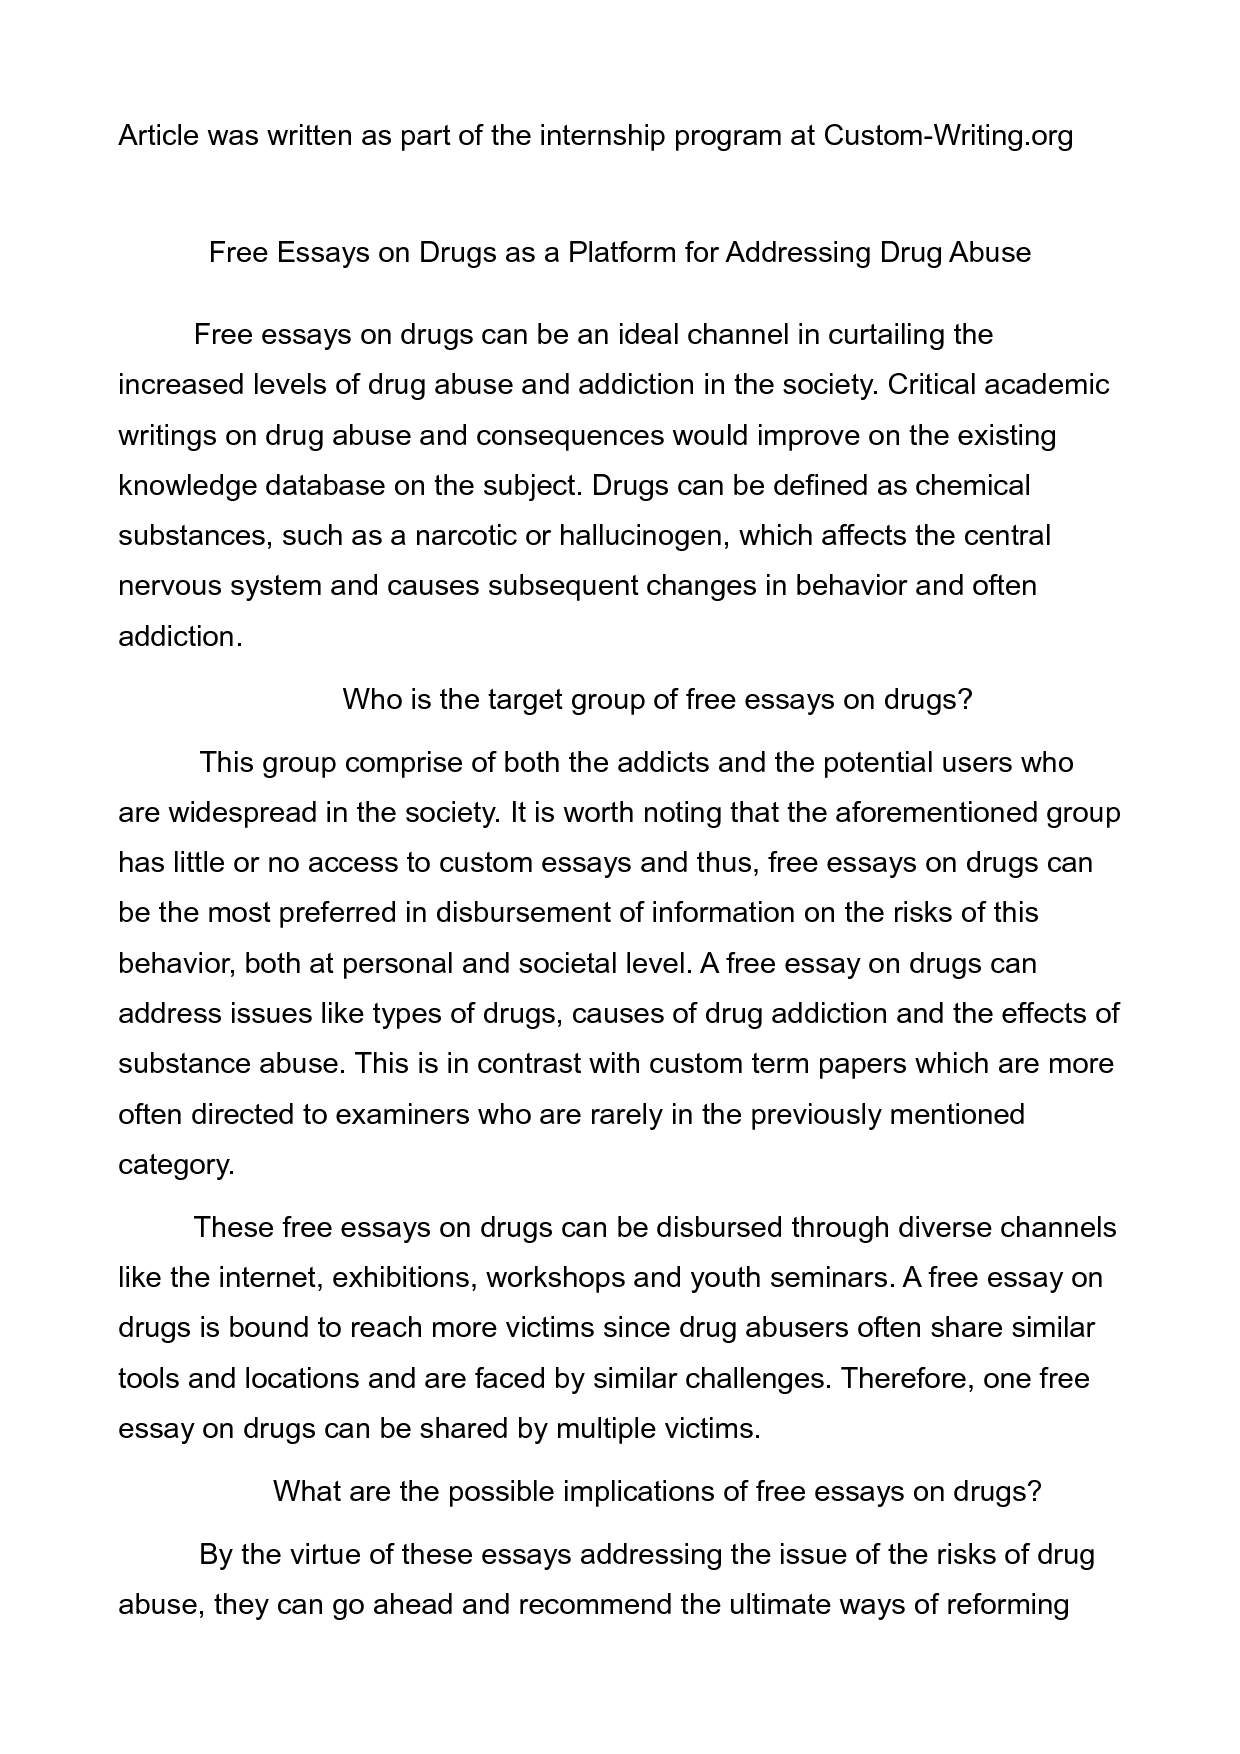 009 Argumentative Essay About Drugs Amazing Definition Pdf Sample Middle School Topics For High Full